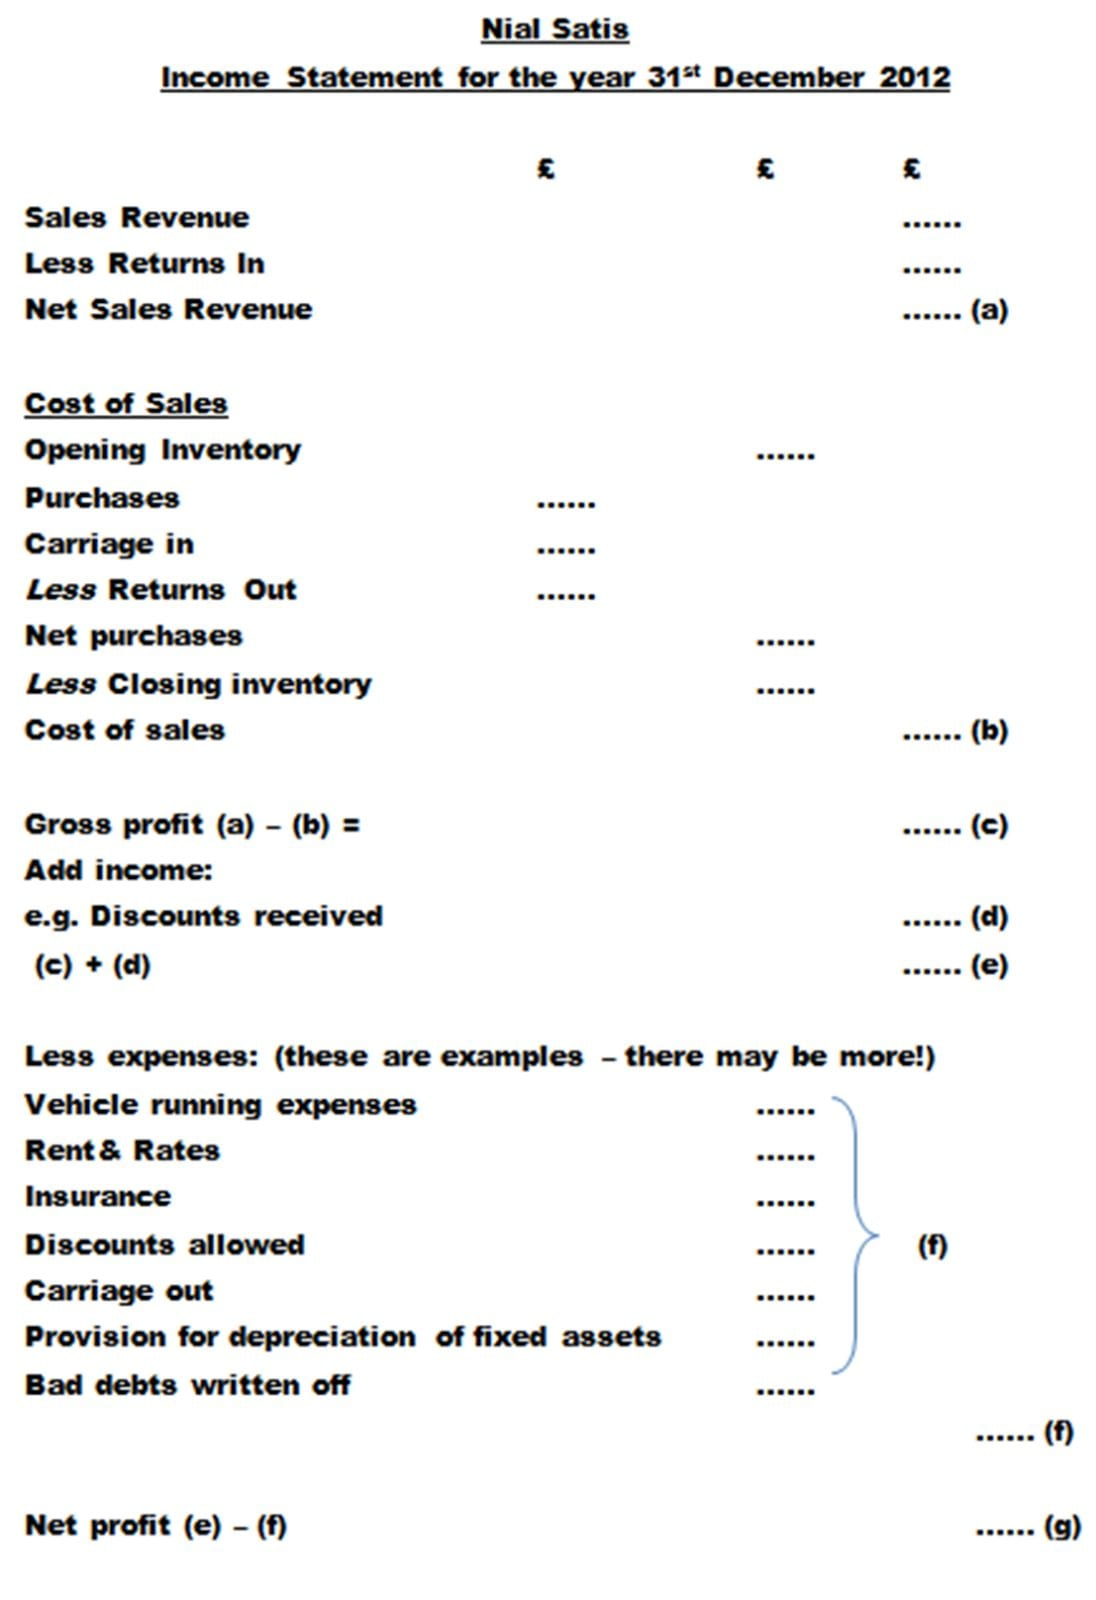 Simple Financial Statement 1